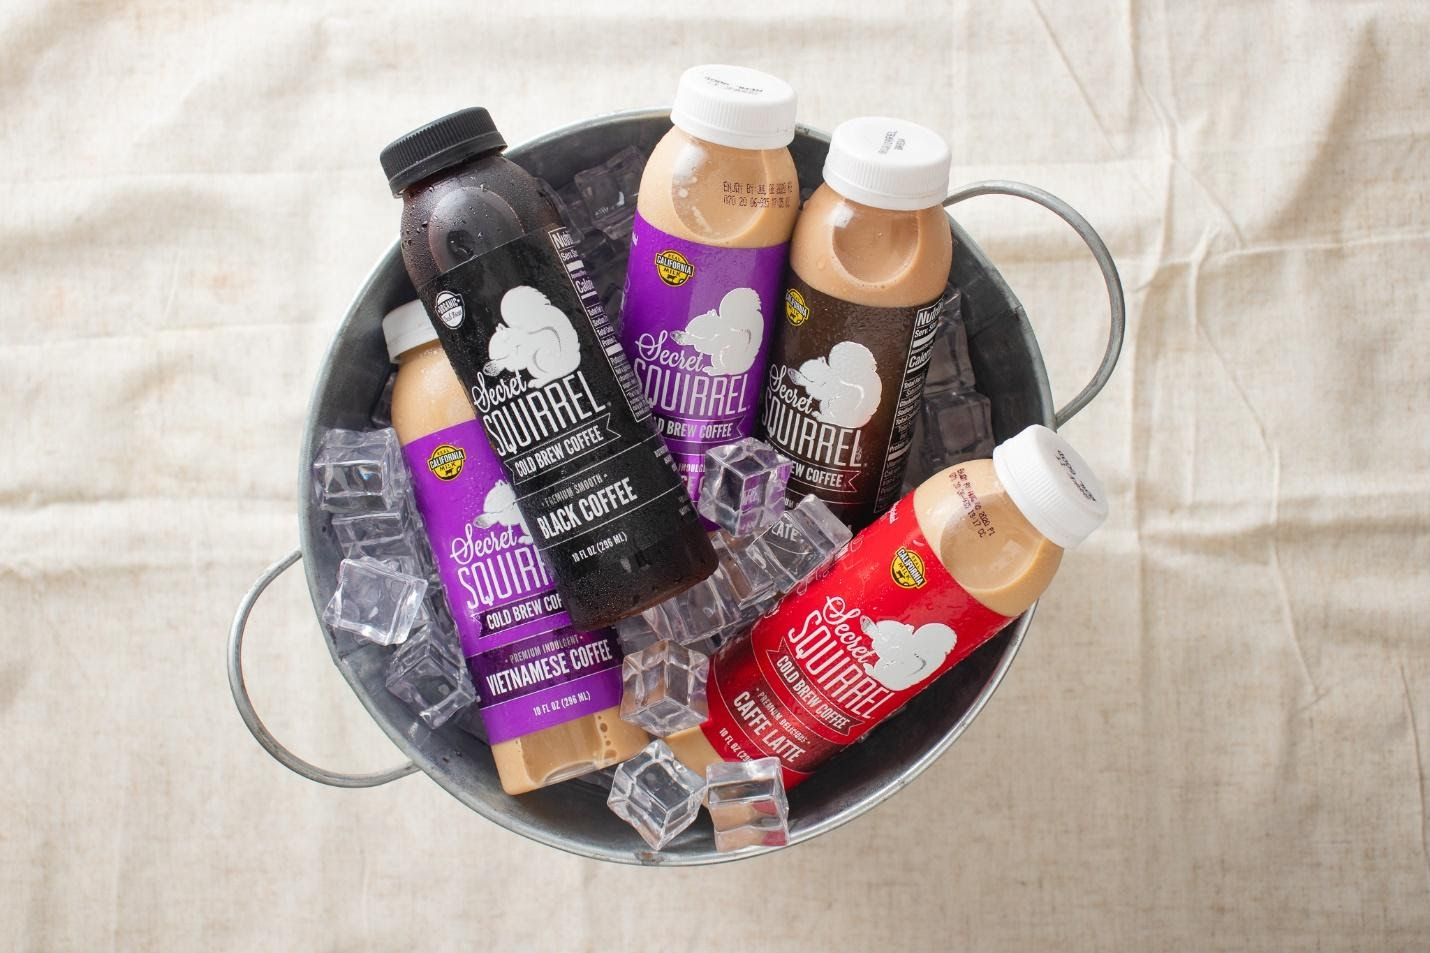 five bottles of Secret Squirrel cold brew coffee in a bucket filled with ice